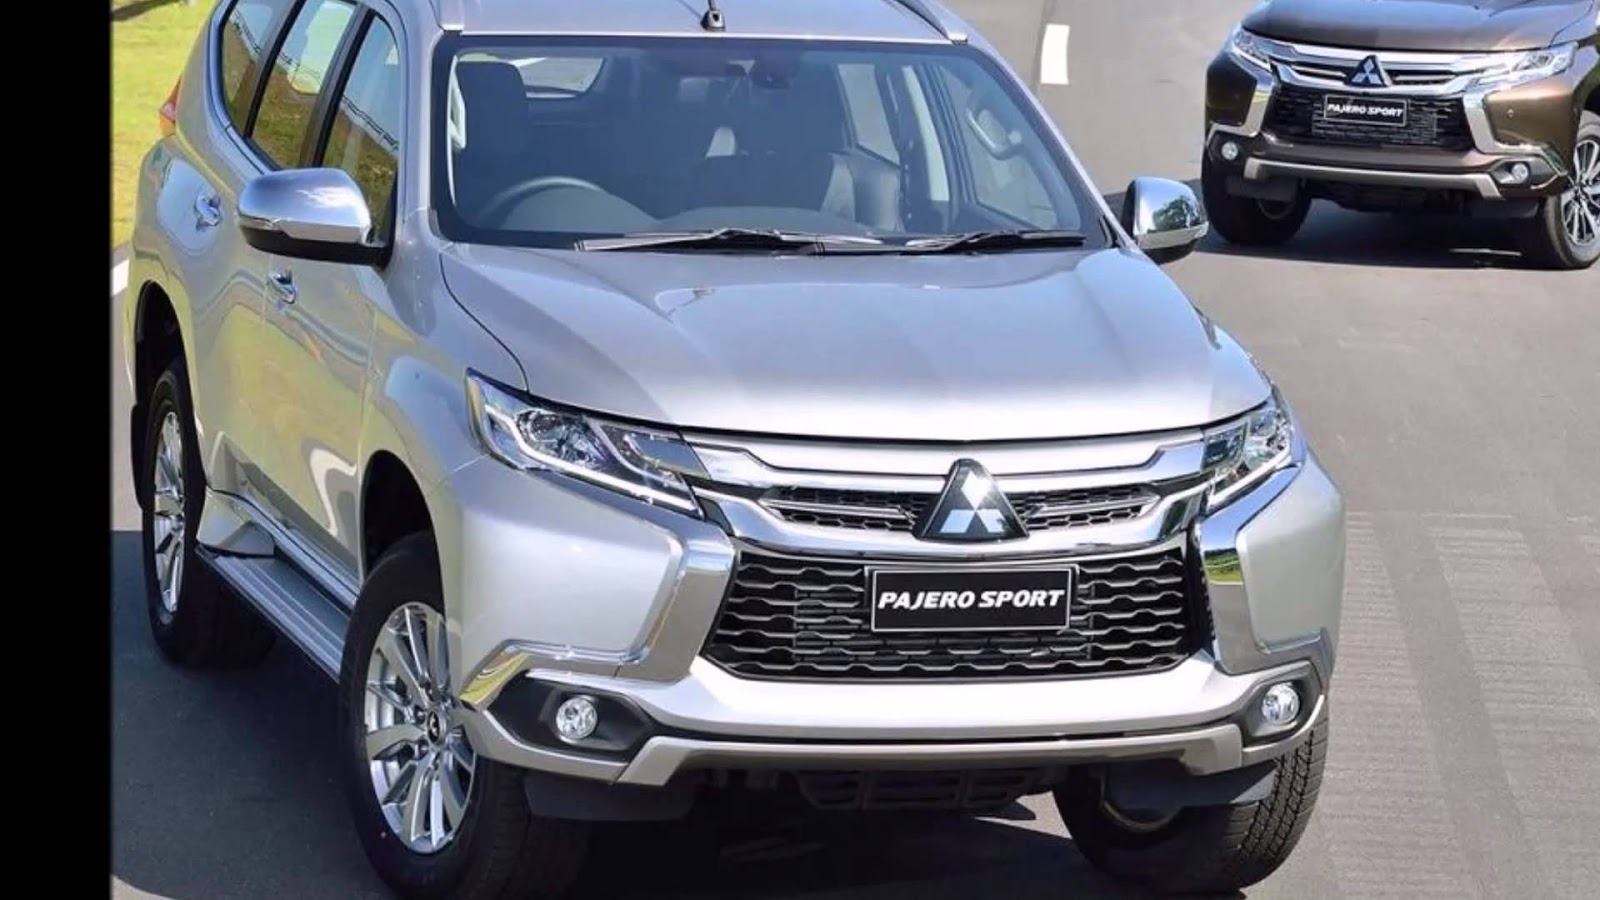 2016 mitsubishi pajero sport facelift hd pictures - all latest new